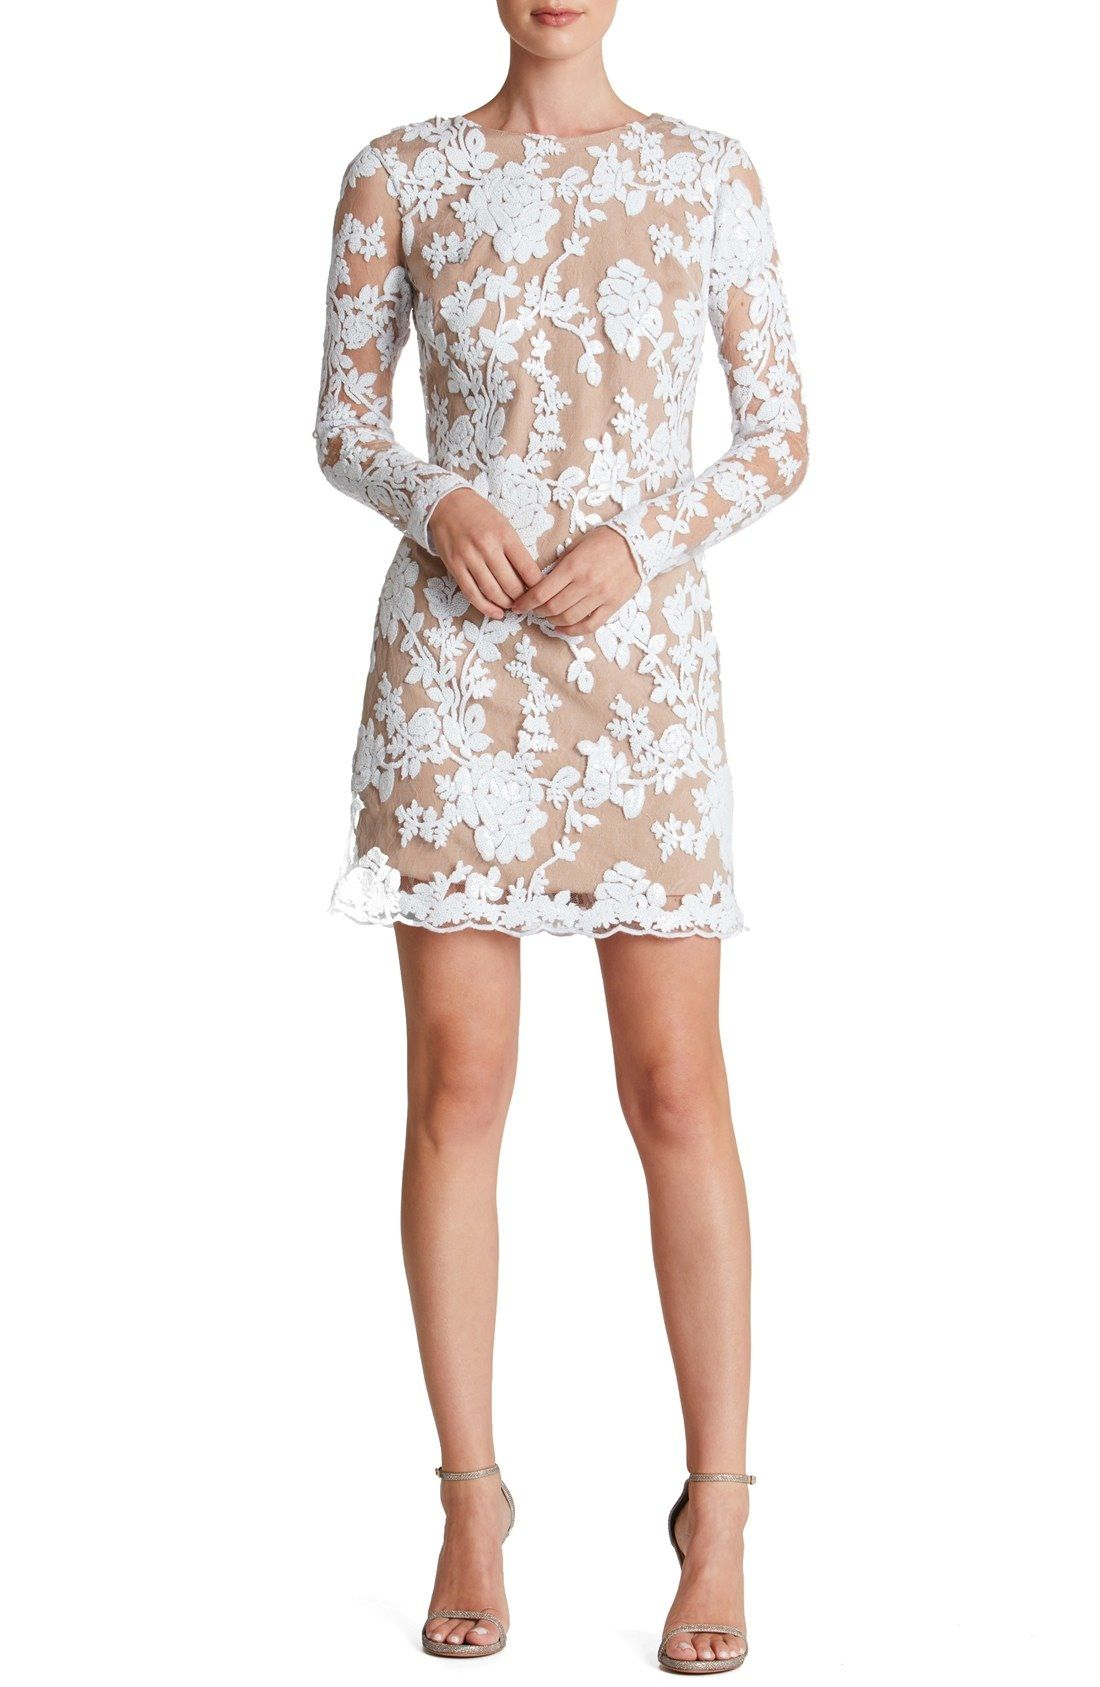 Shift dresses for wedding guests  Grace ALine Dress  Sequins Nordstrom and Romantic lace